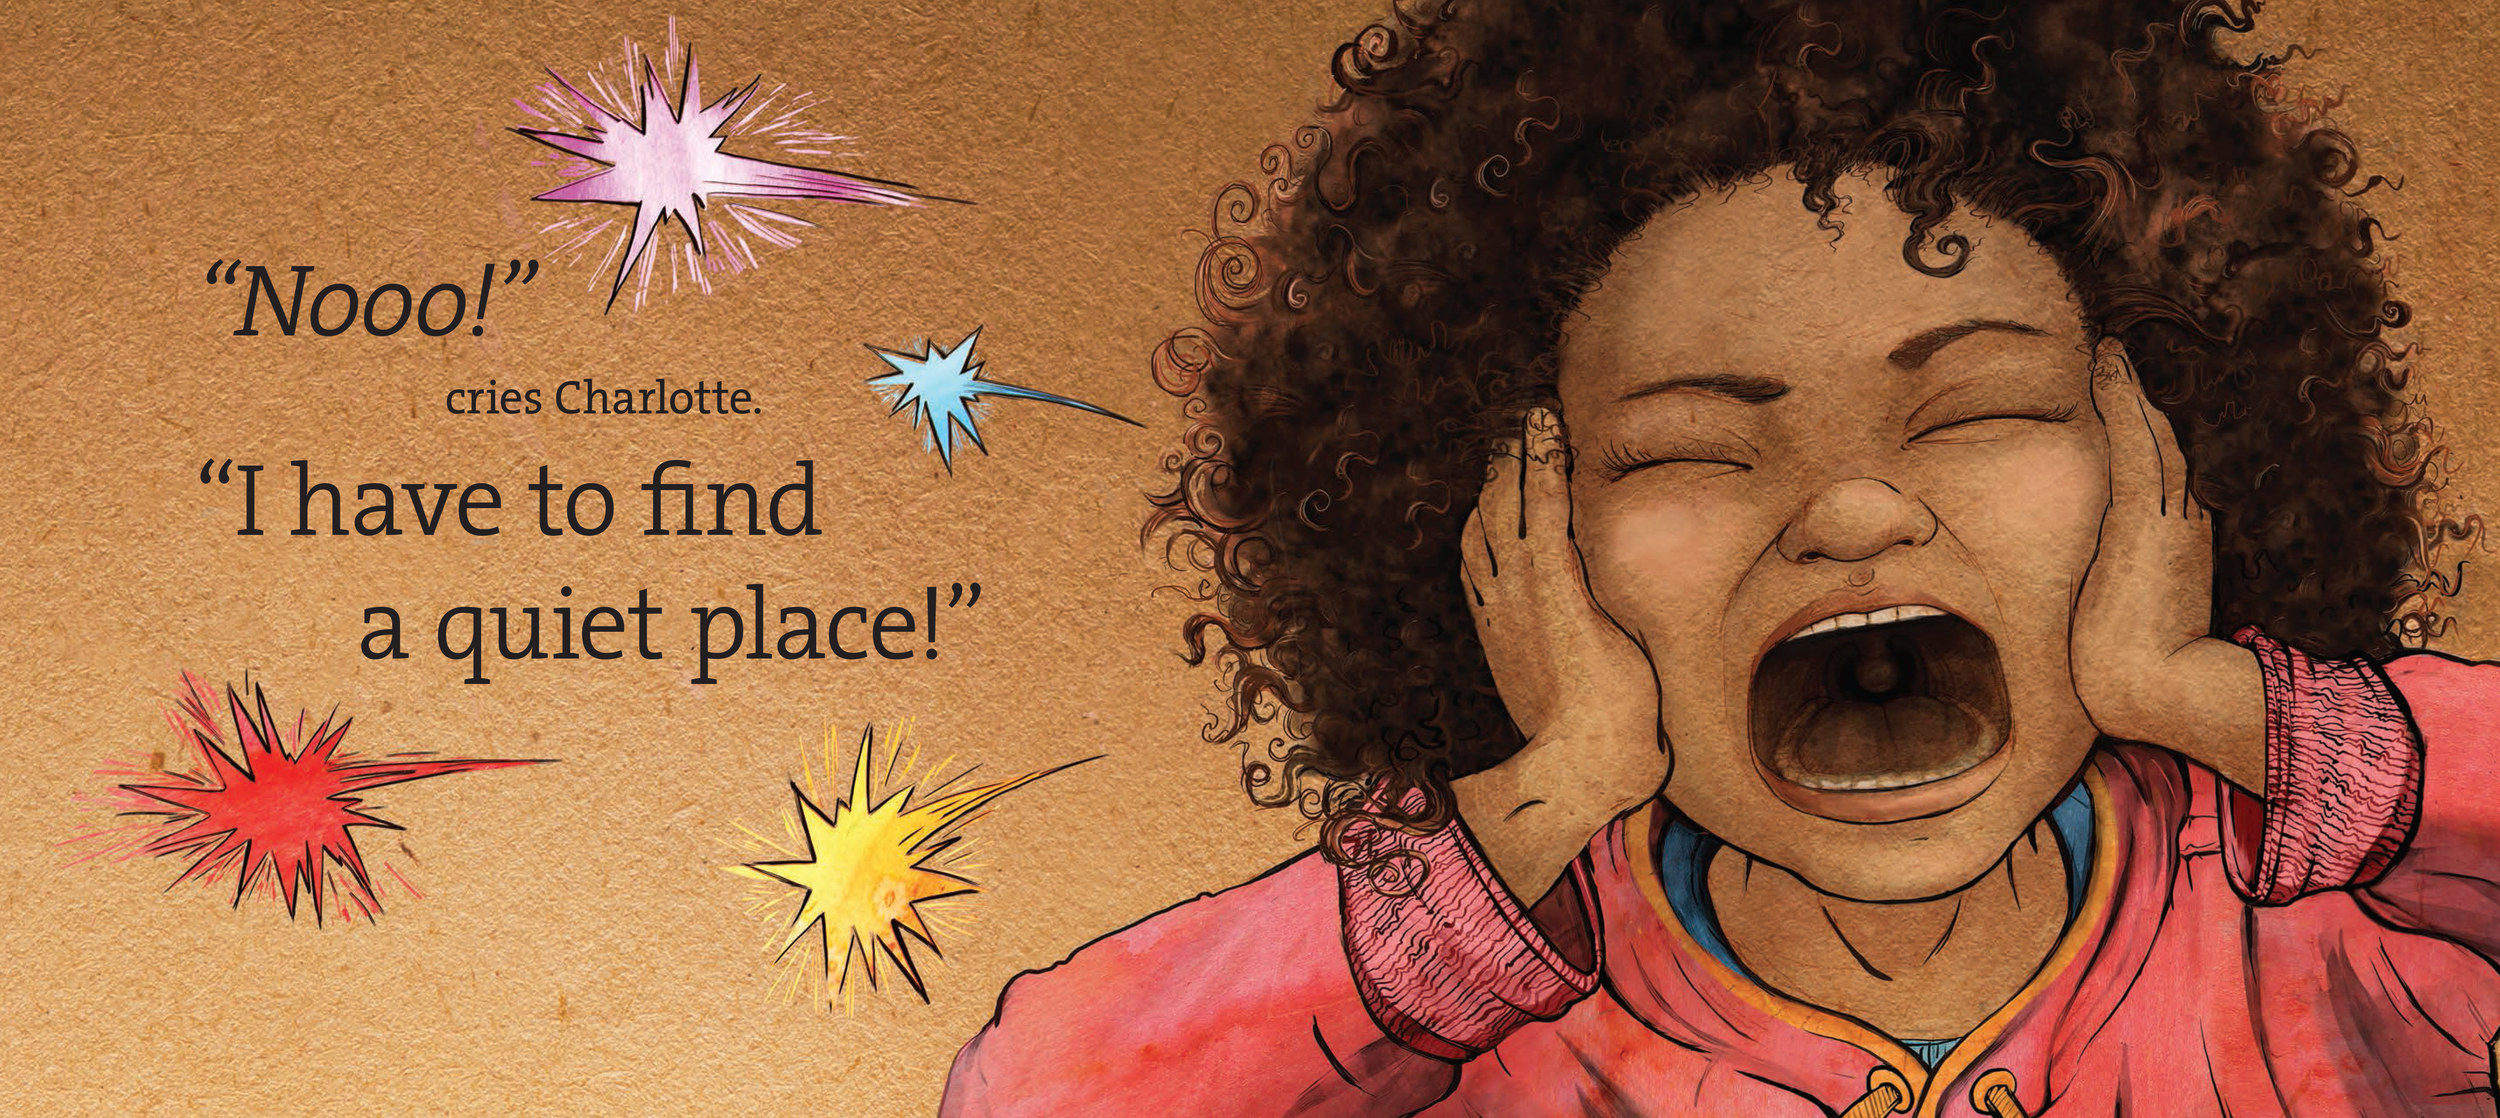 celebrate-picture-books-picture-book-review-charlotte-and-the-quiet-place-nooo!-charlotte-cries